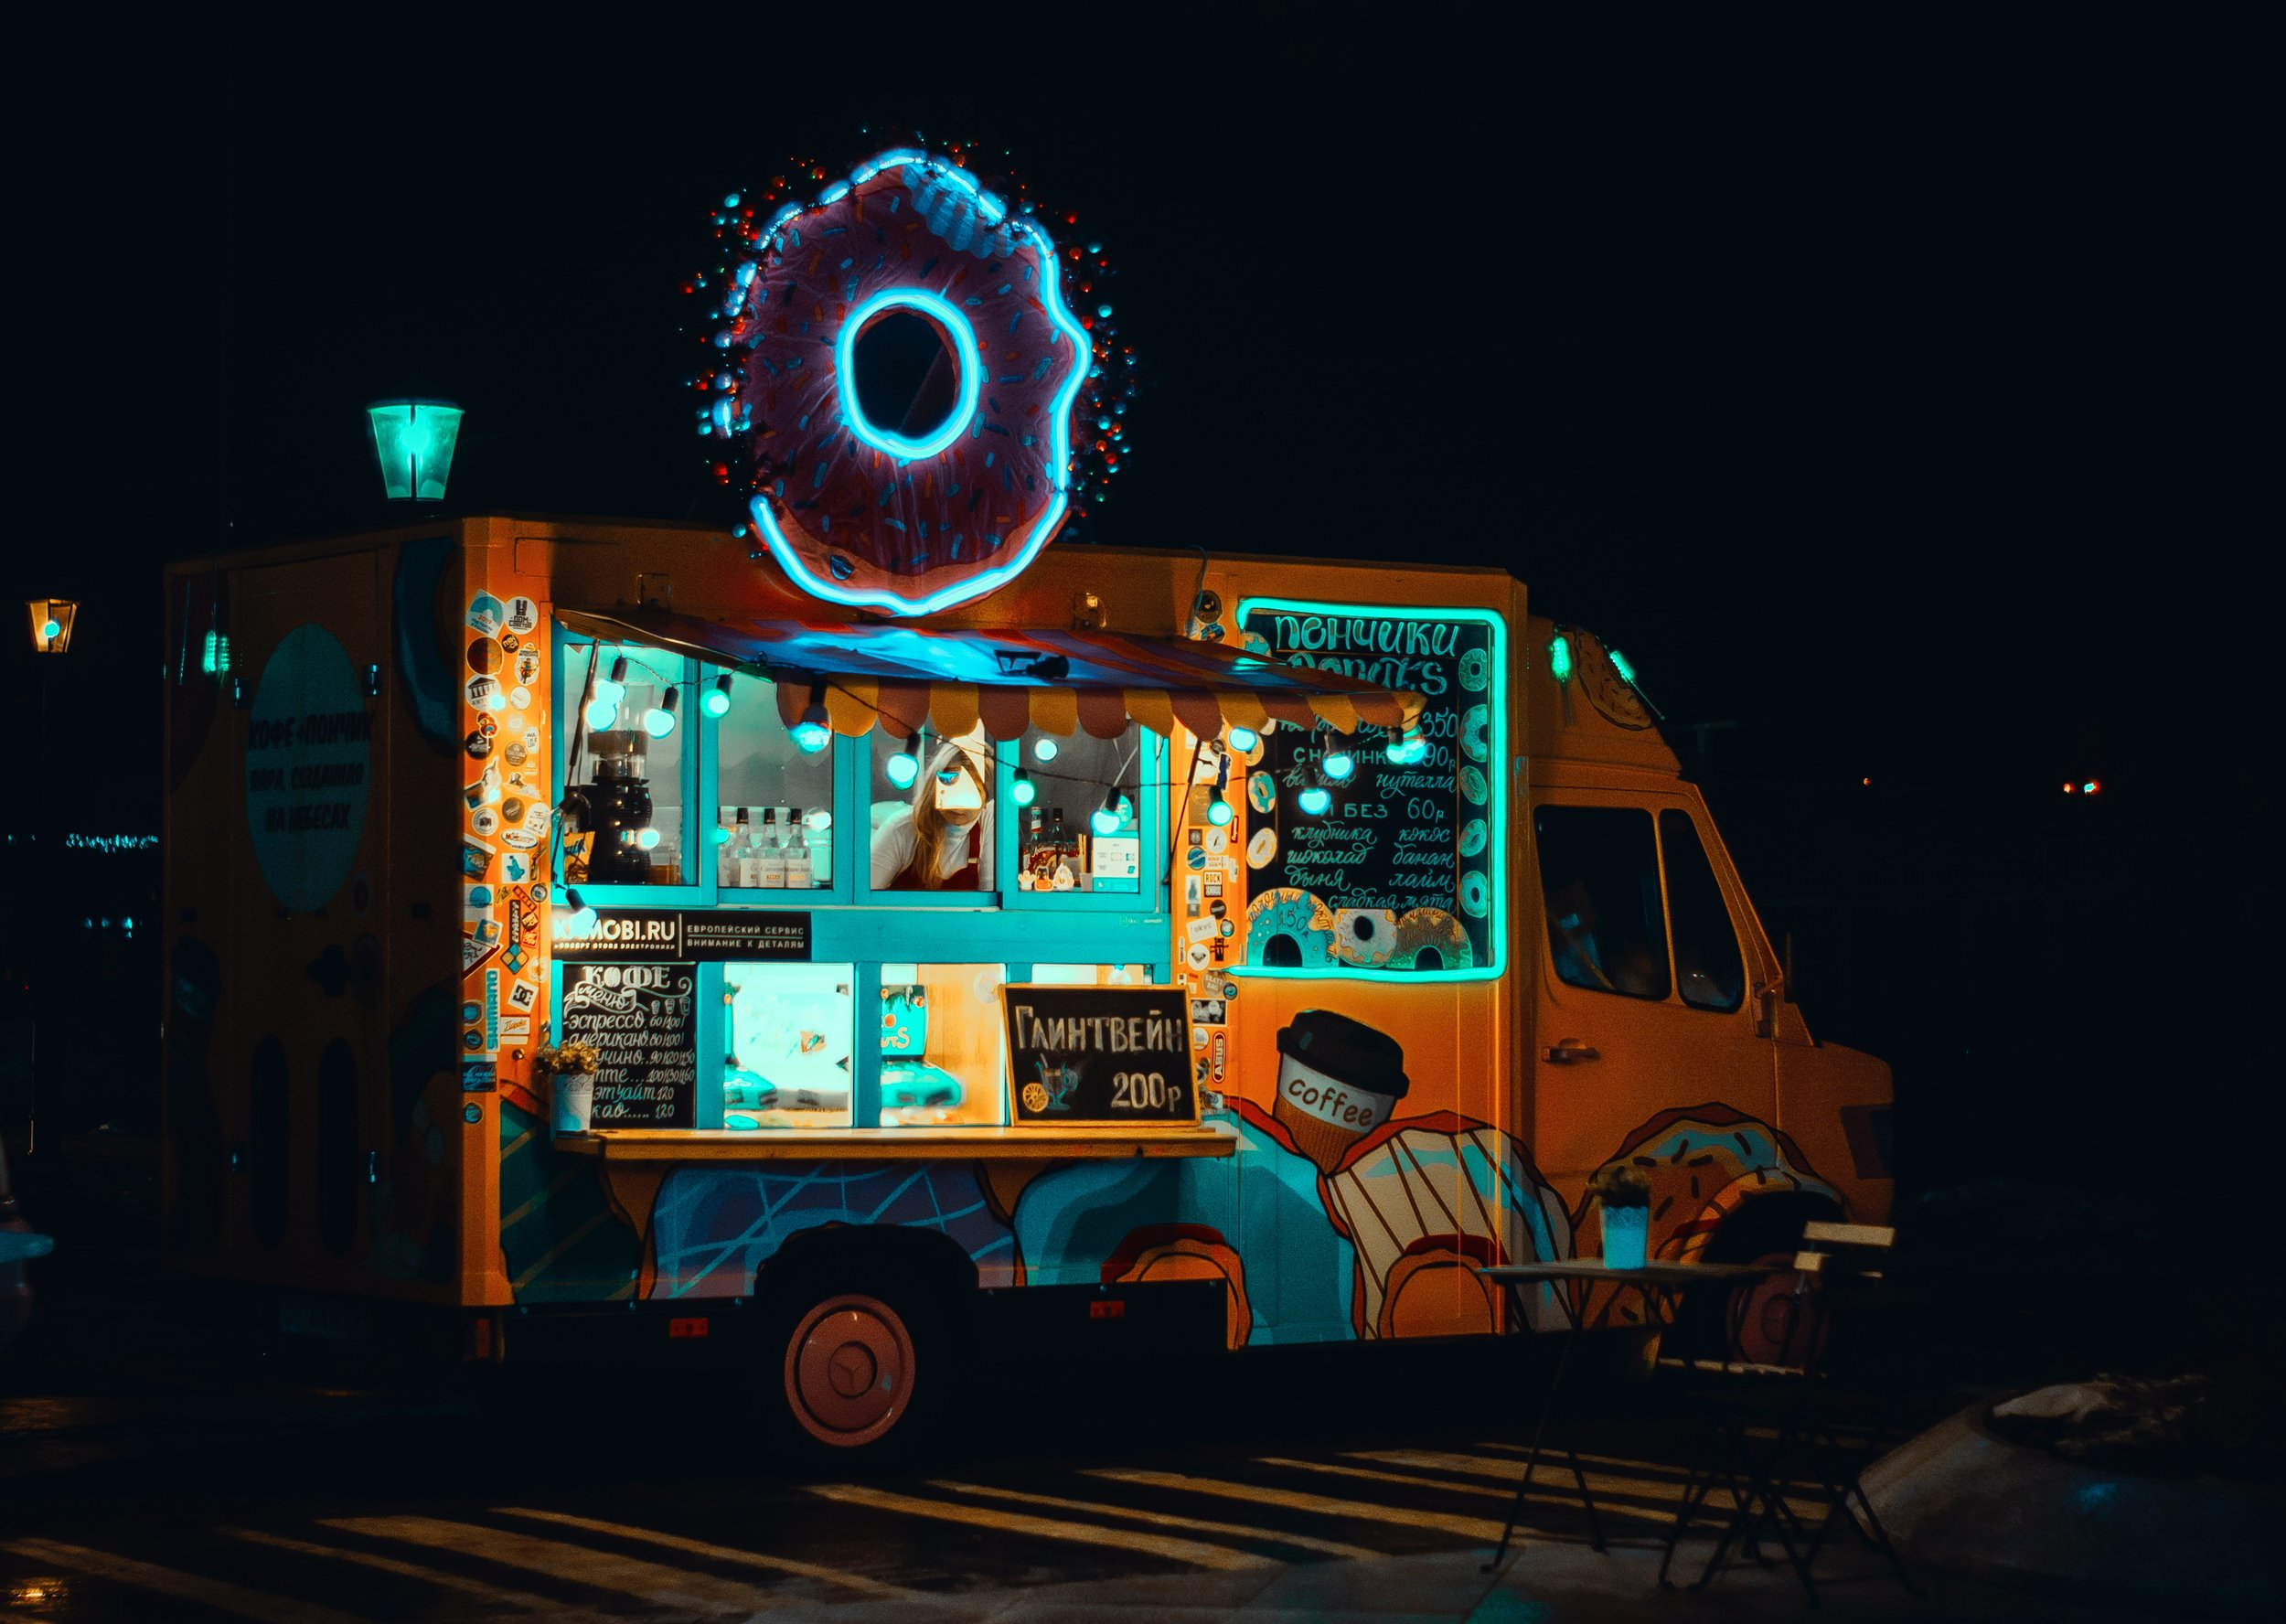 food-truck-illuminated-light-1766686.jpg